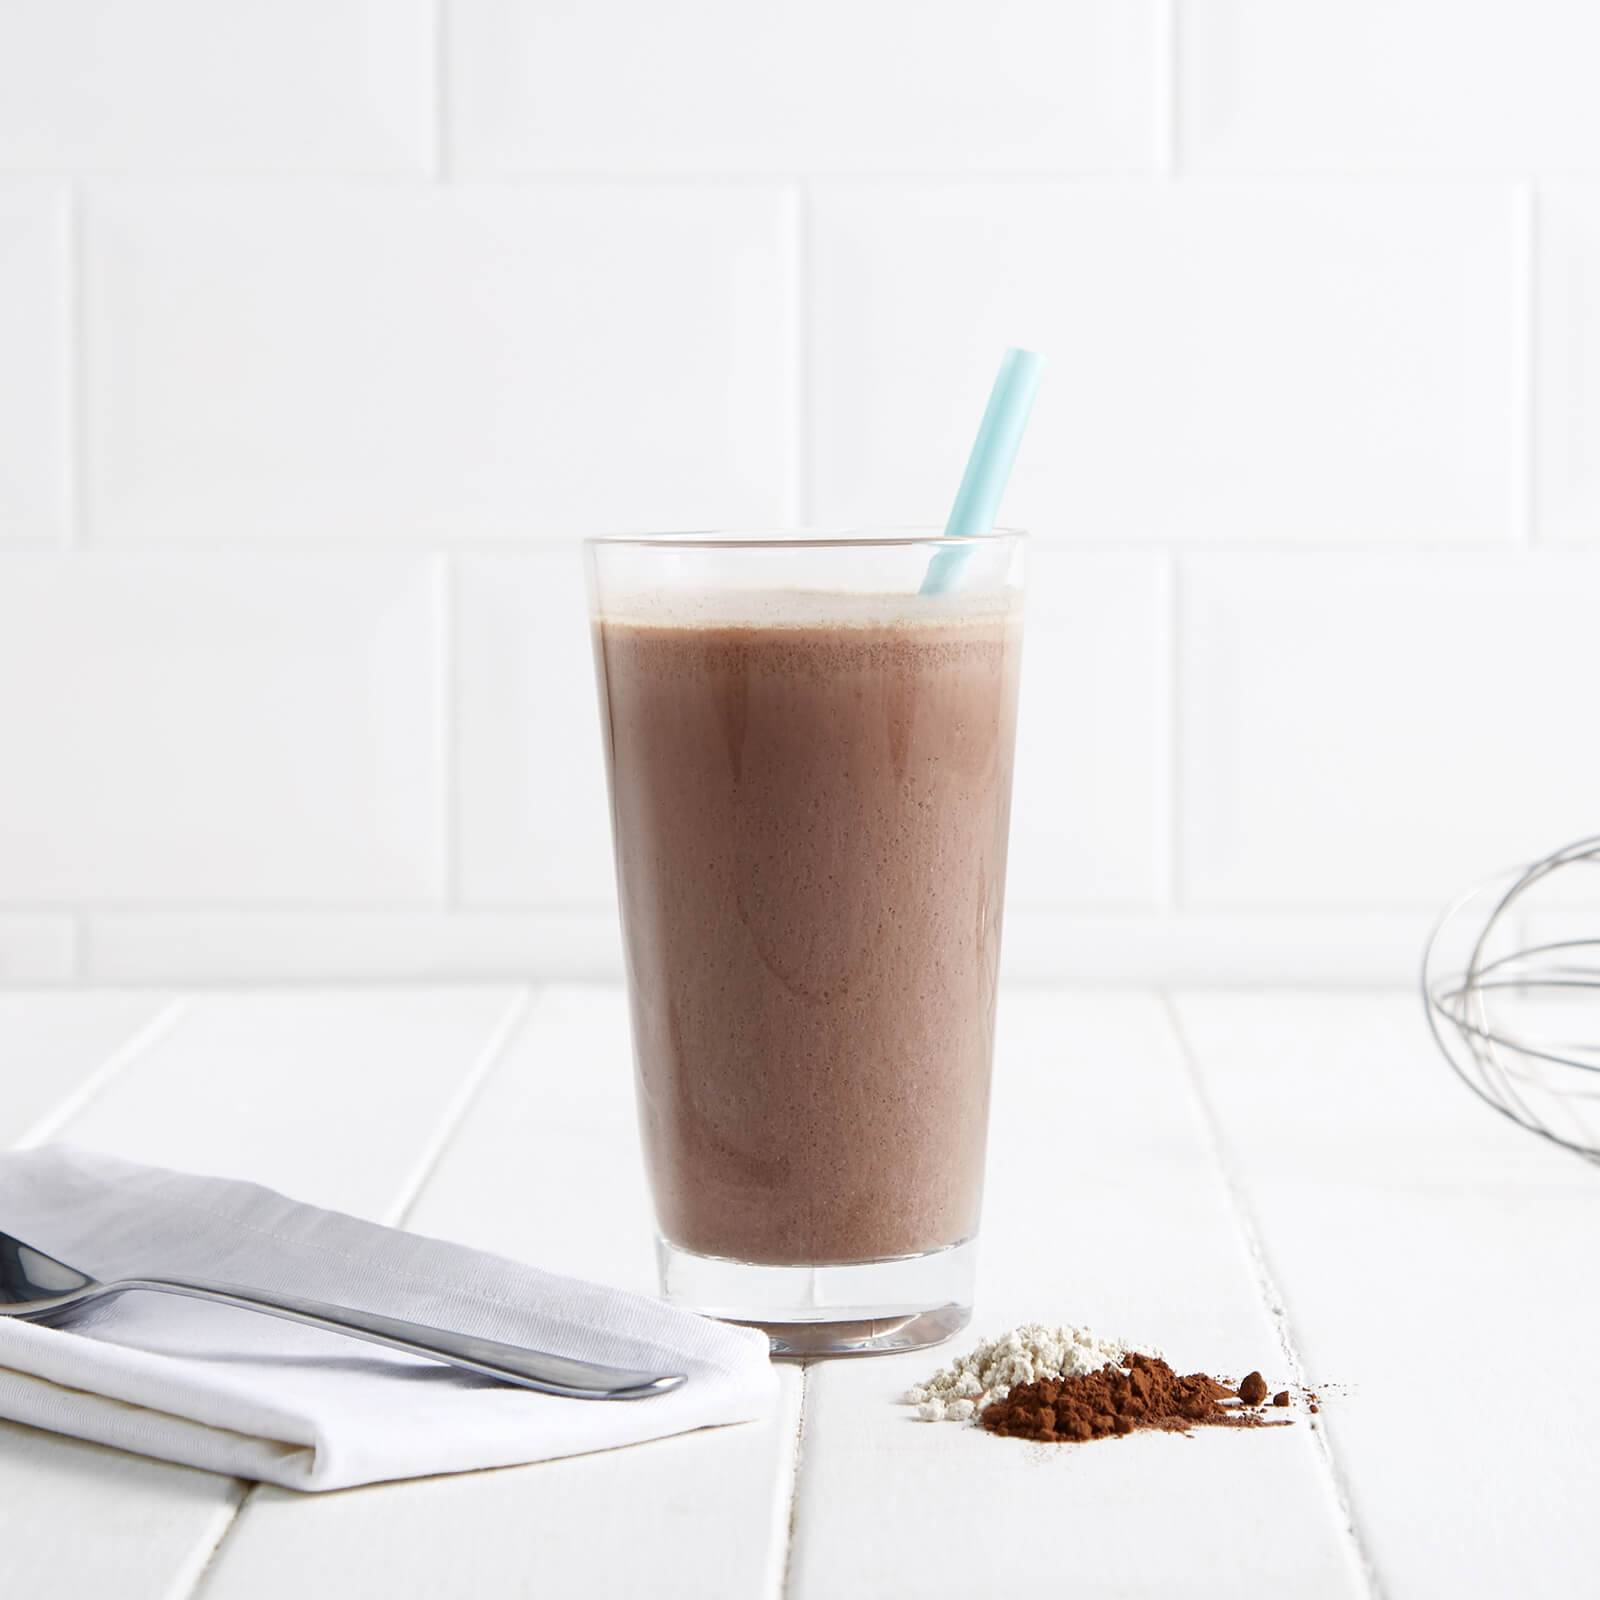 Exante Diet Meal Replacement Low Sugar Chocolate Smoothie